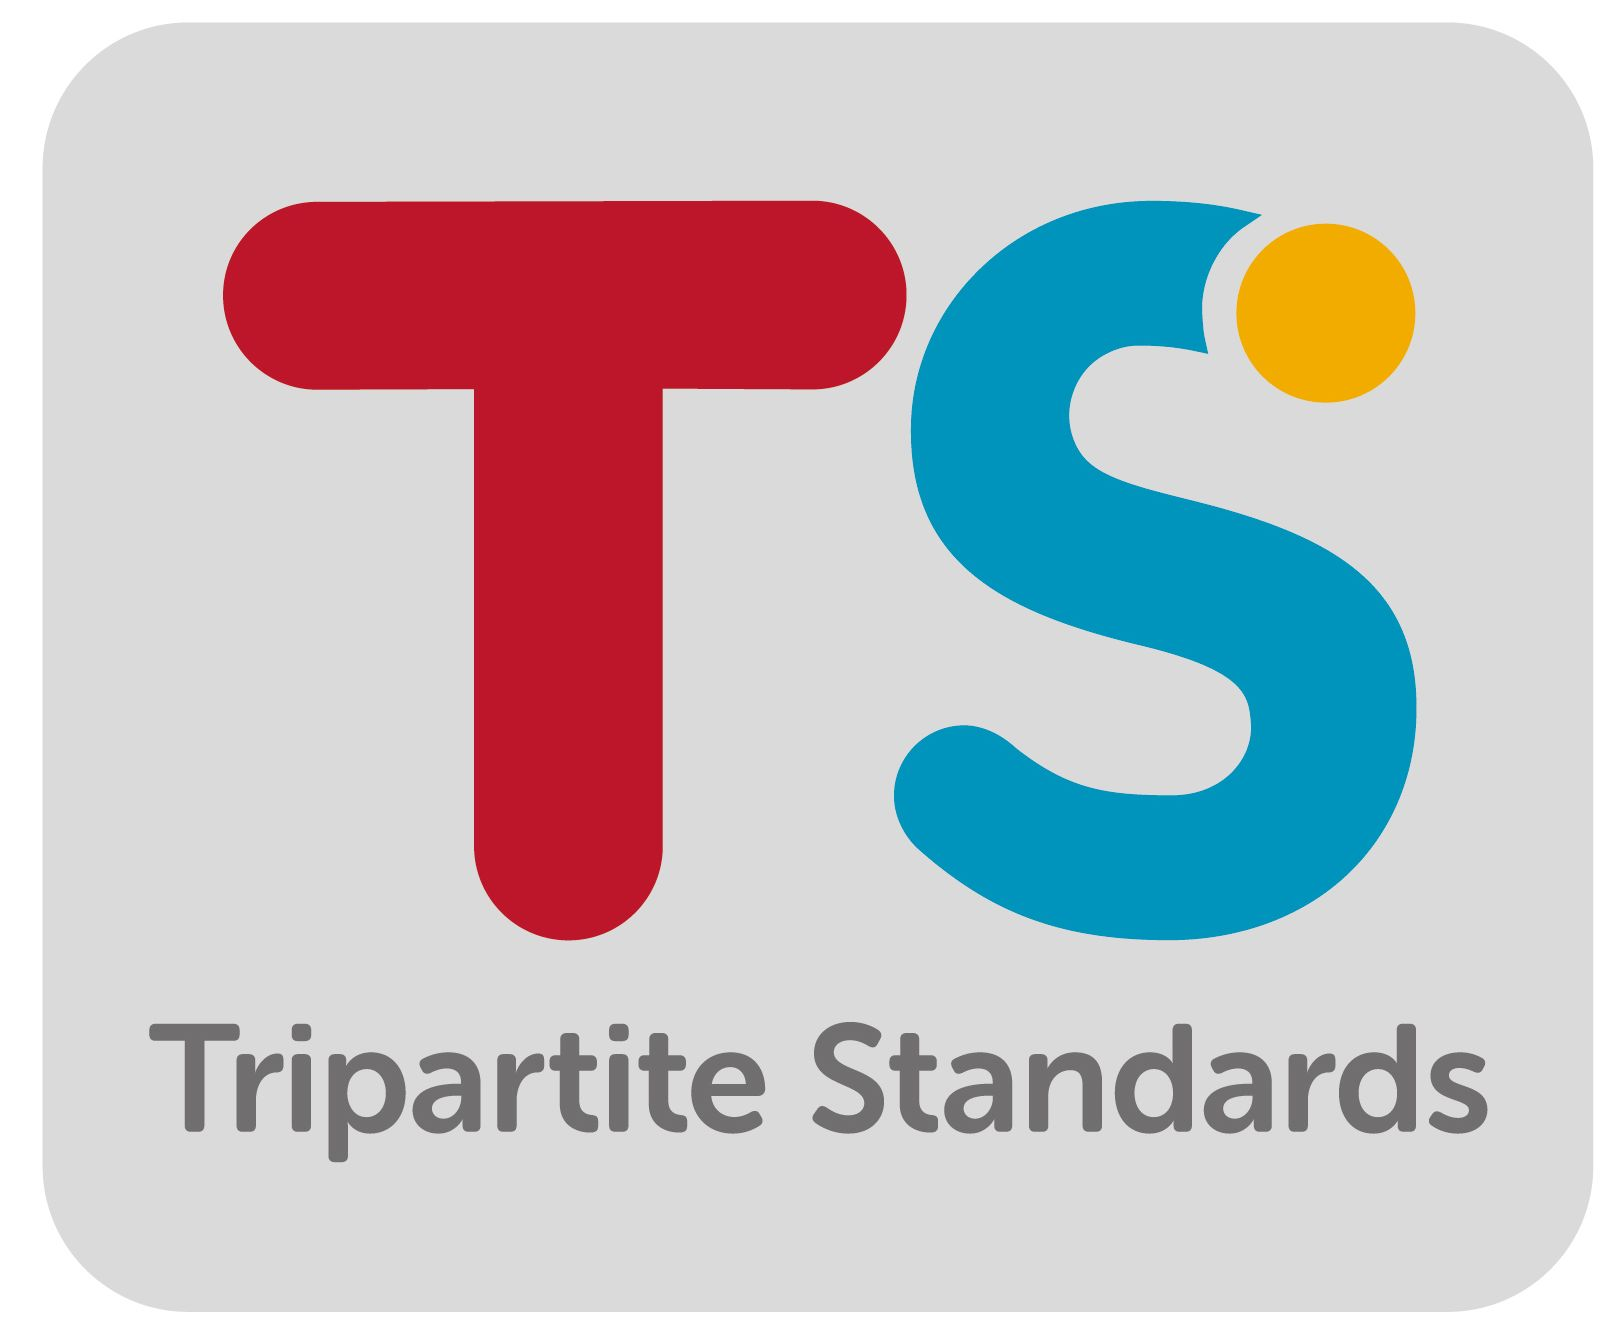 Tripartite Standards Logo